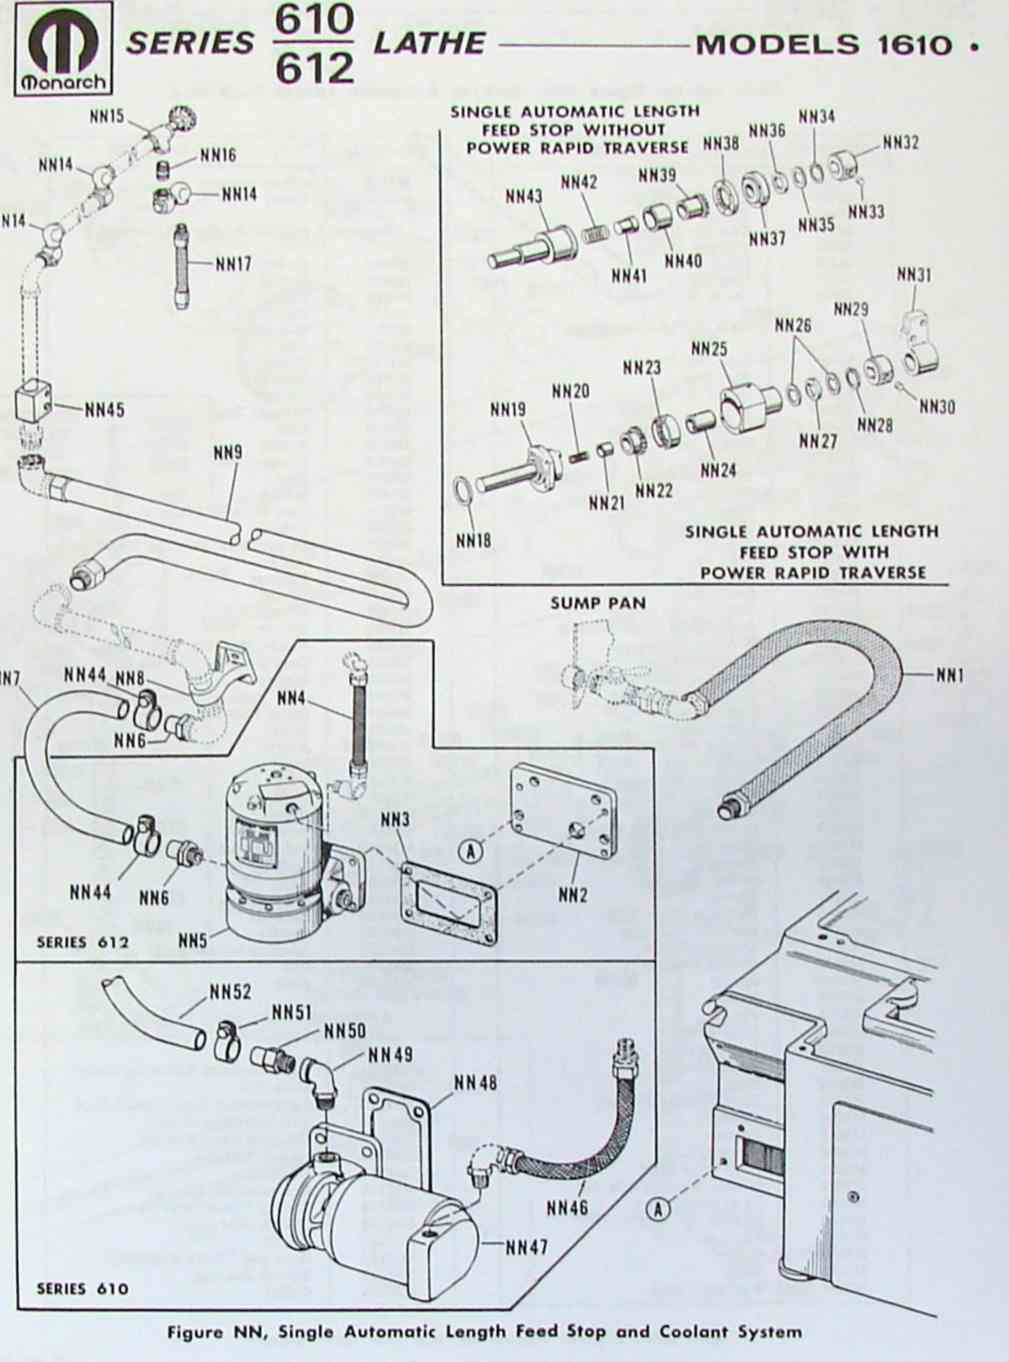 Monarch Lathe Wiring Diagram Explained Diagrams Motor 610 612 Metal Parts Manual Ozark Tool Manuals Books South Bend